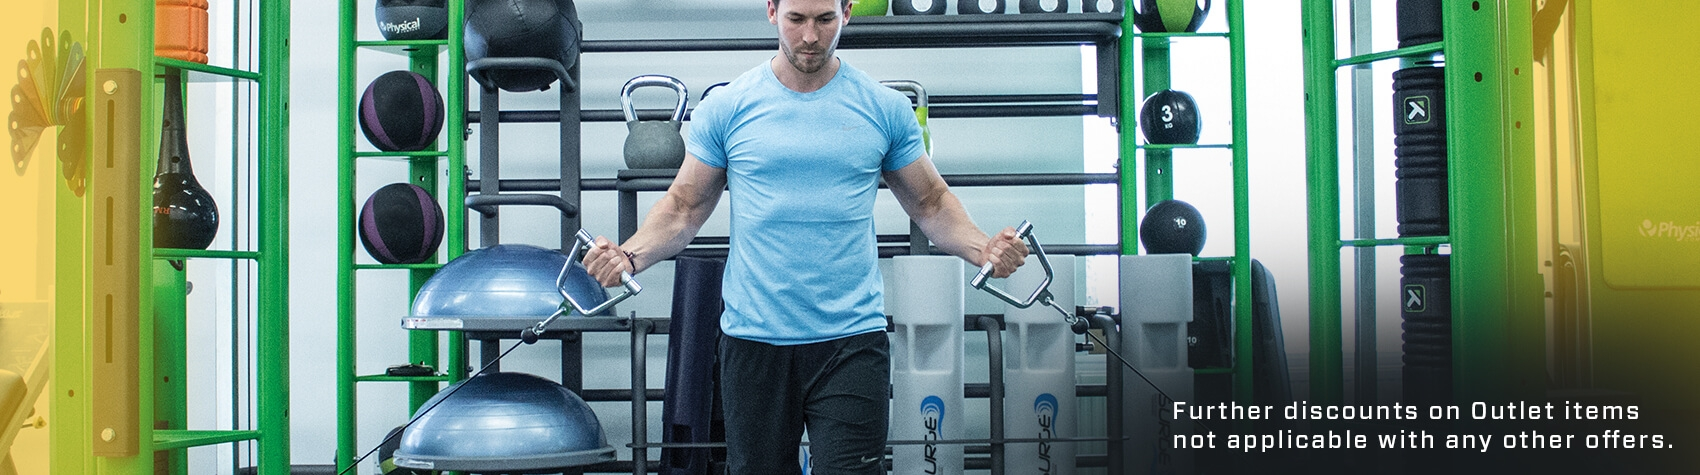 Up to 50% off strength, combat, studio and functional gym equipment